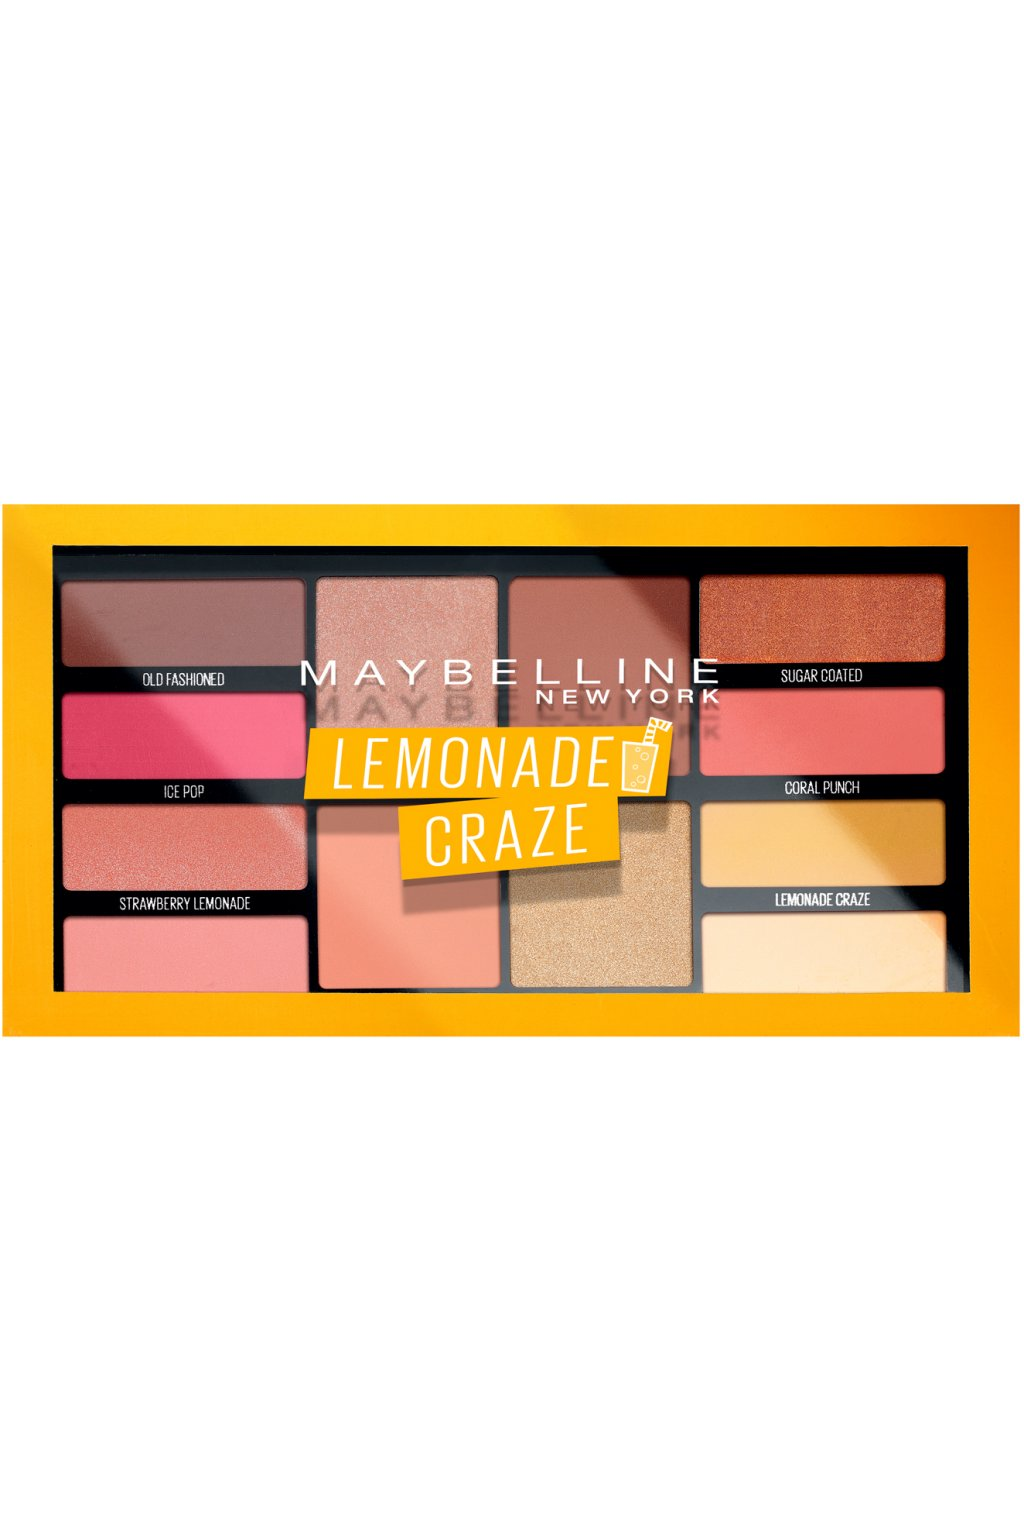 maybelline lemonade craze paleta ocnich stinu